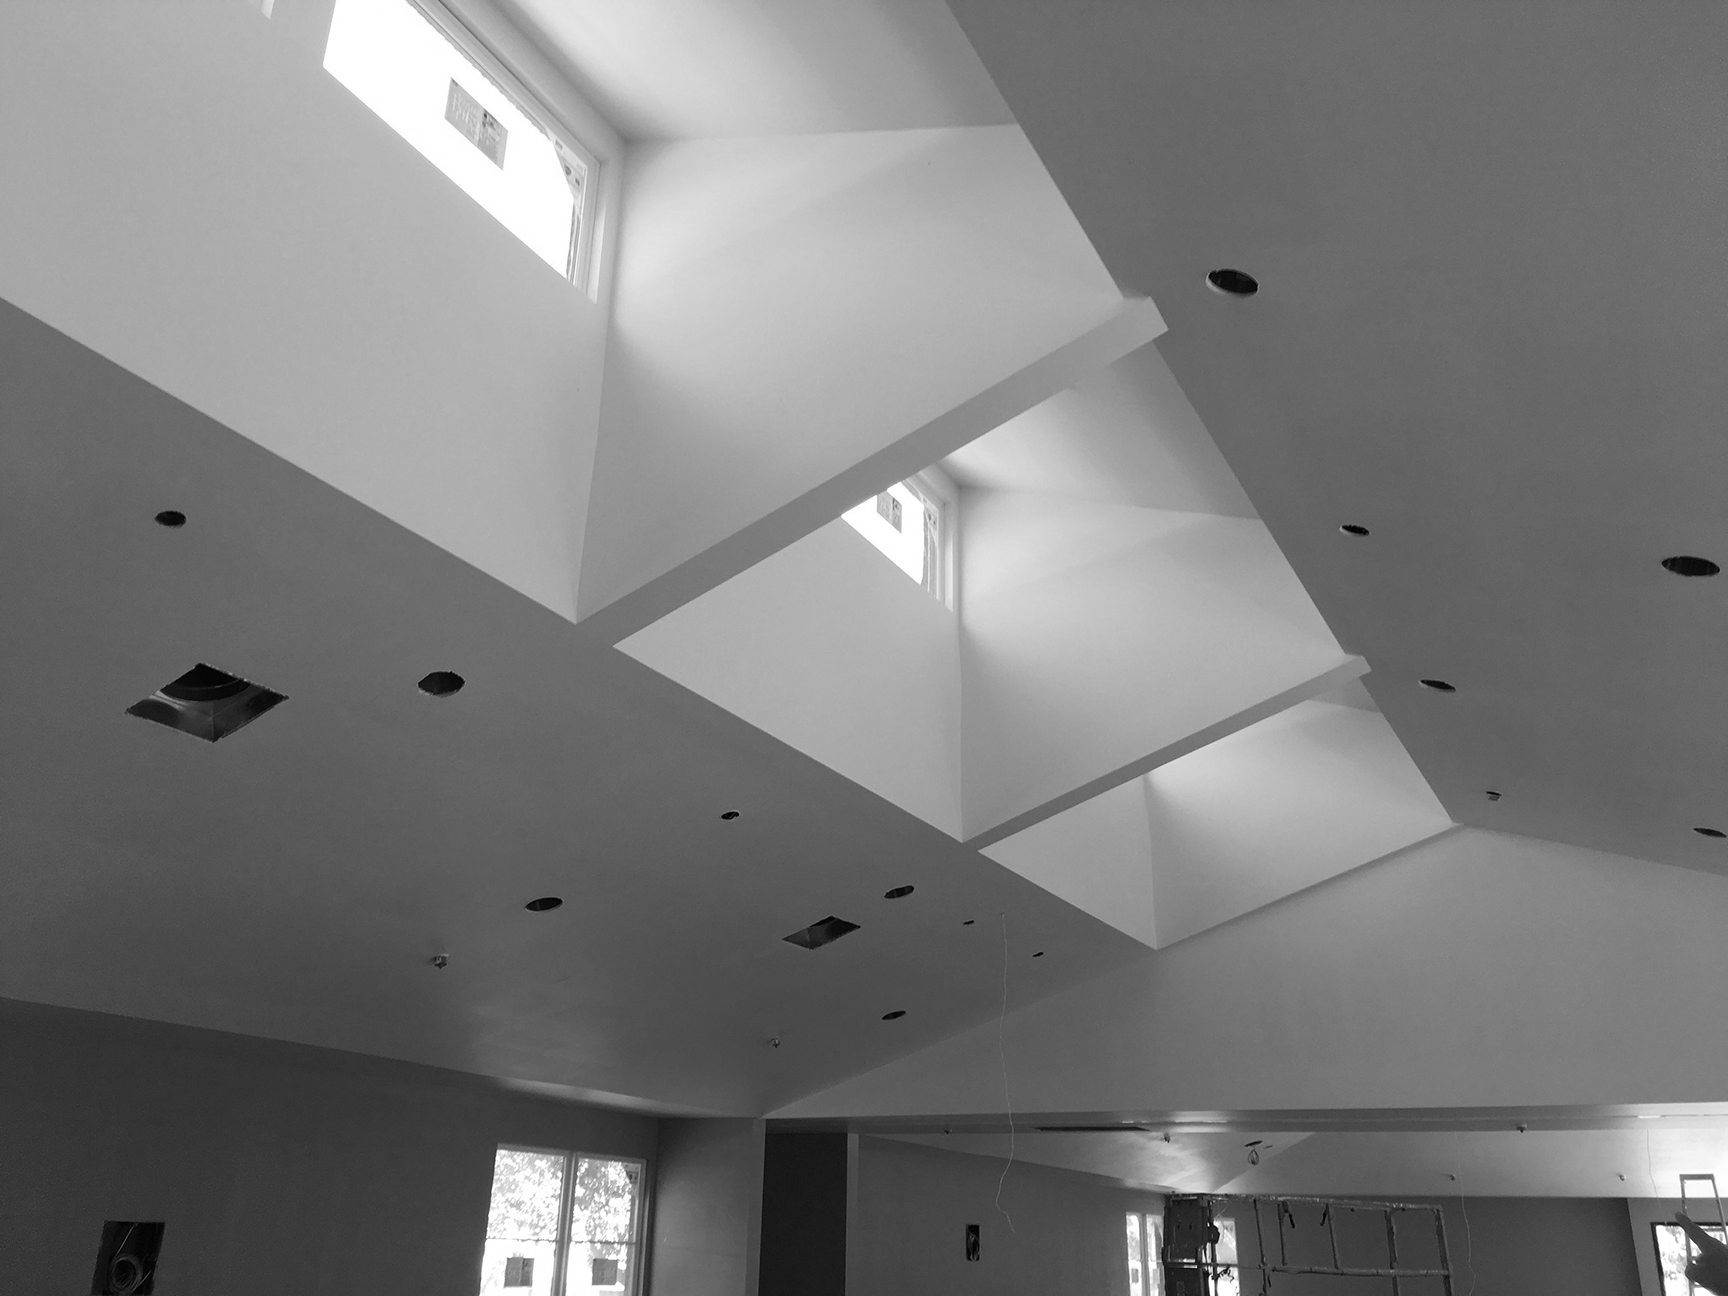 - Clerestory windows illuminating the main space of the Wellness Center at MVGH